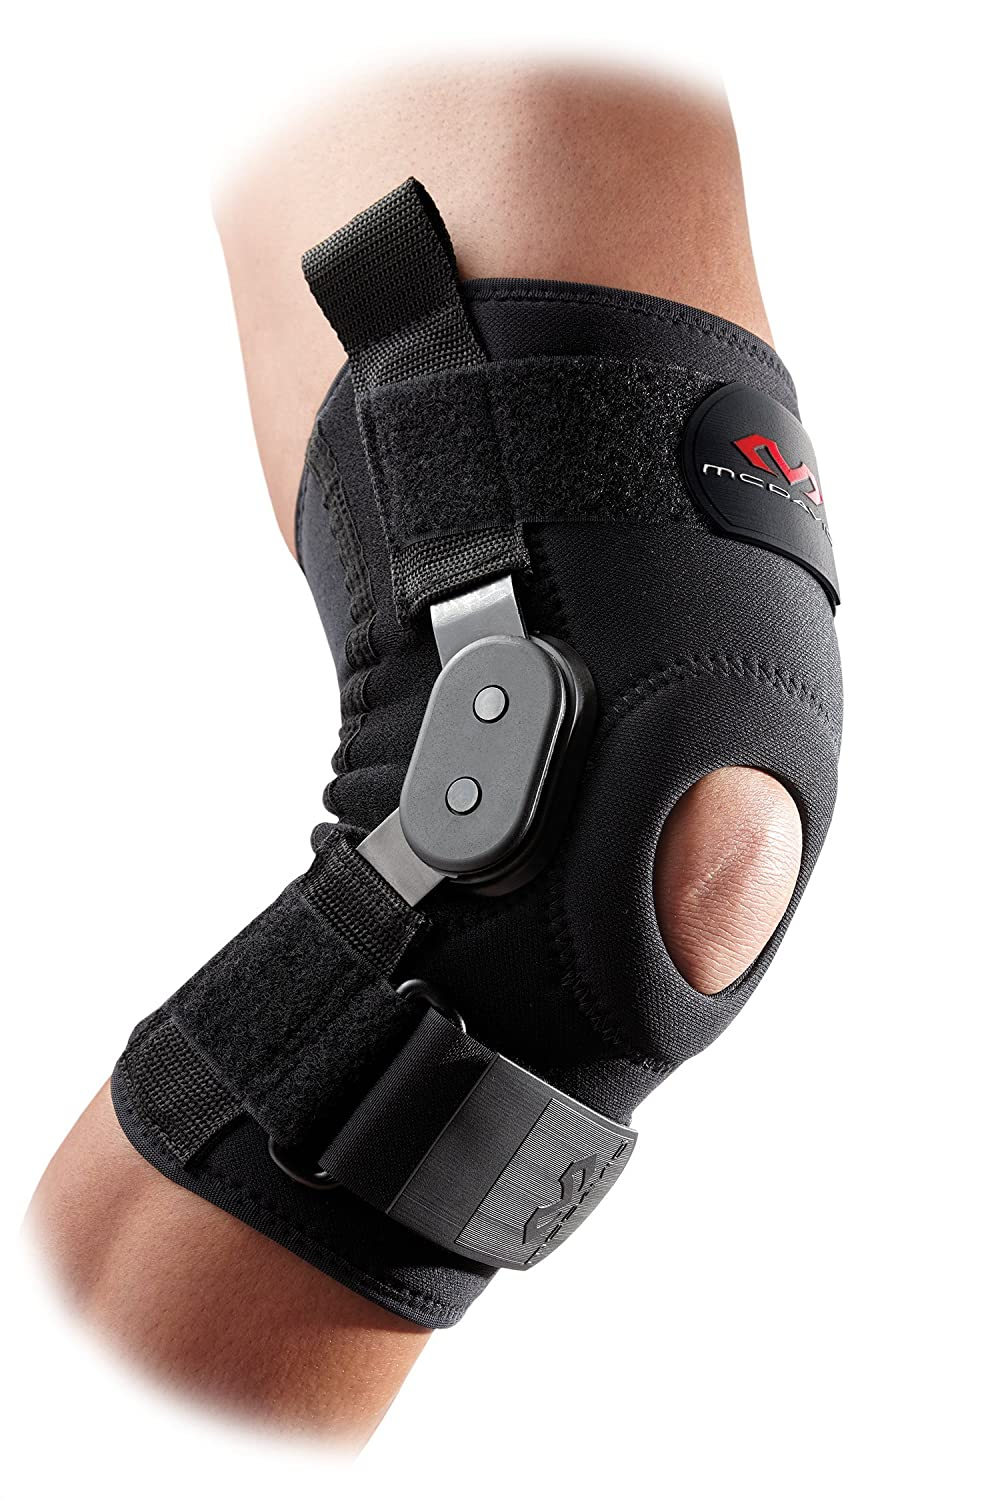 McDavid Level 3 Knee Brace with Polycentric Hinges - MD429